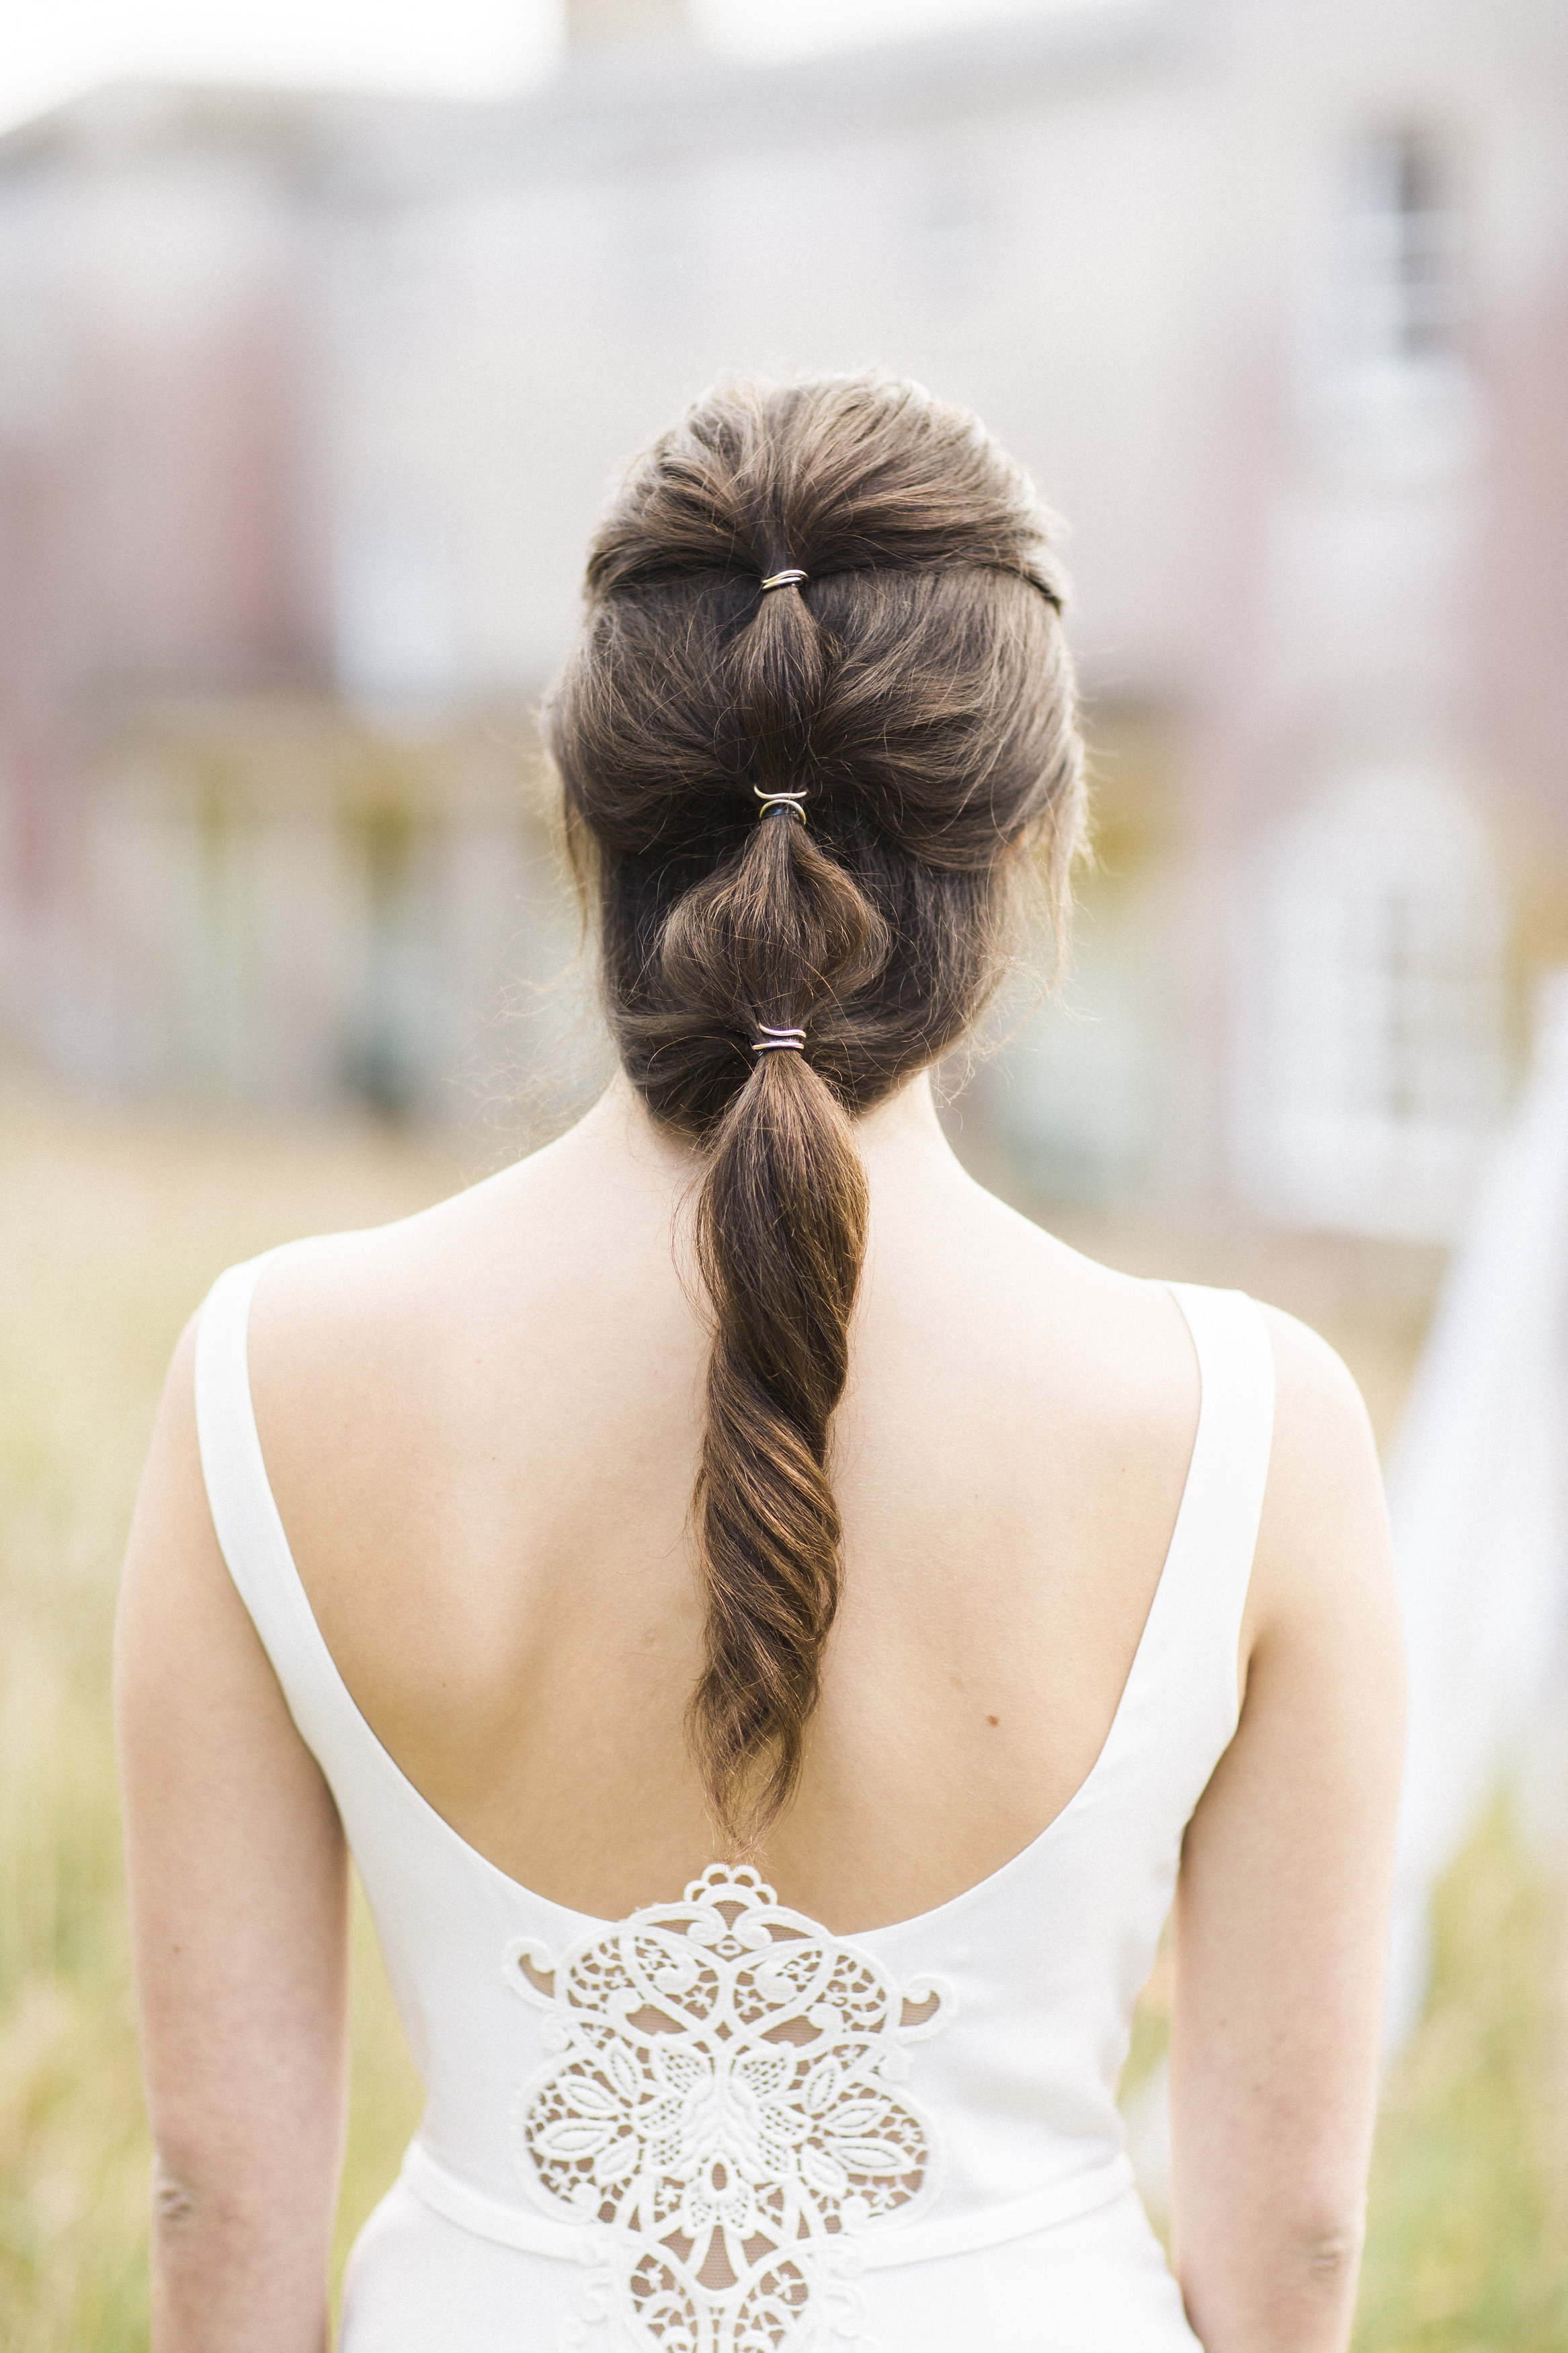 bridal hair style inspiration for an updo